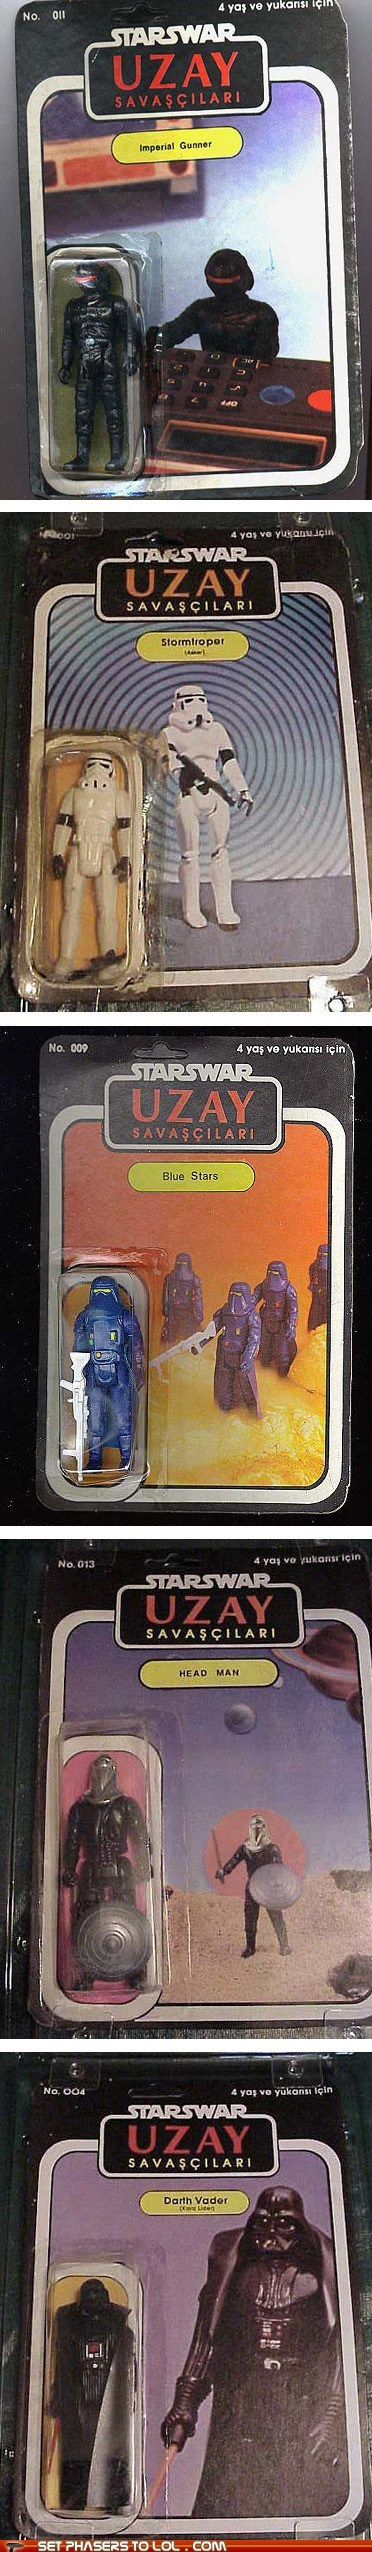 action figures,bootleg,cheap,darth vader,knock offs,ripoff,star wars,stars war